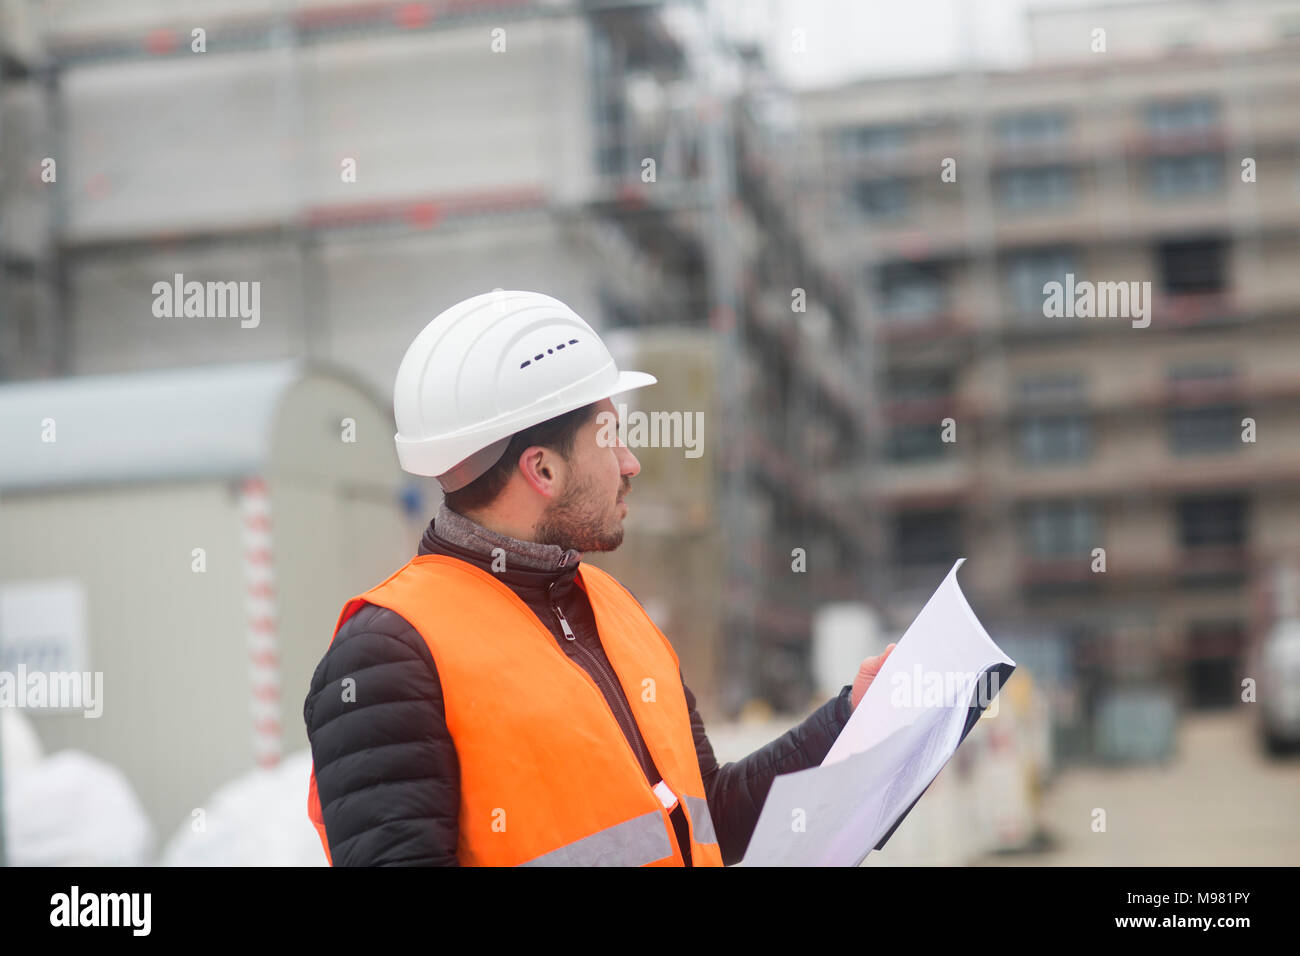 Man with plan wearing safety vest and hard hat at construction site - Stock Image